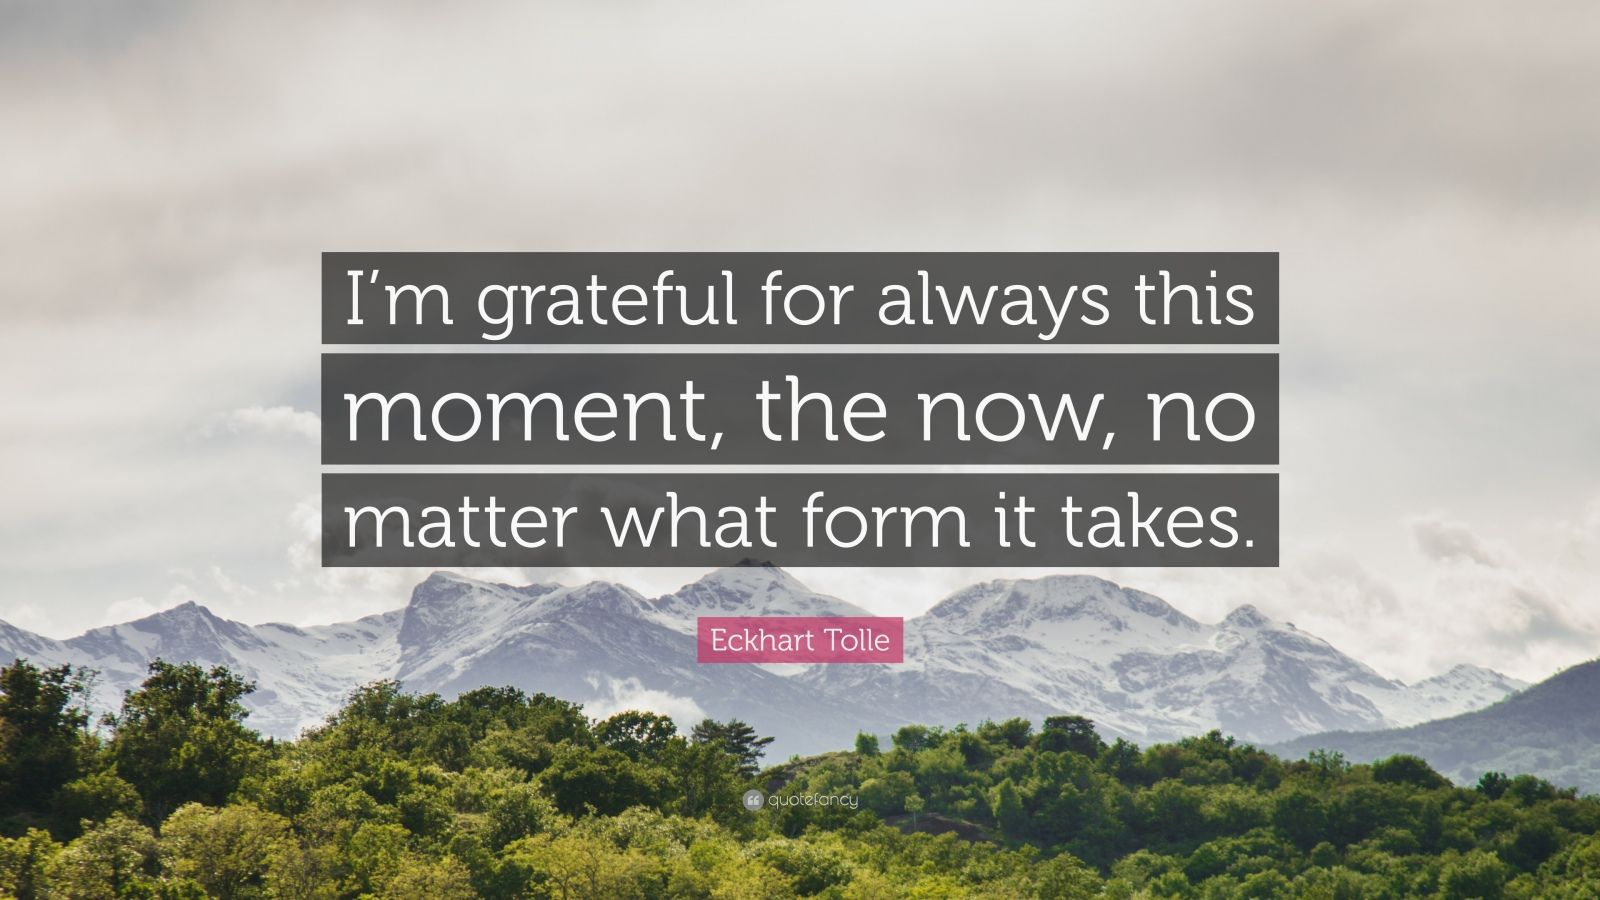 """Eckhart Tolle Quote: """"I'm grateful for always this moment, the now, no matter what form it takes."""""""